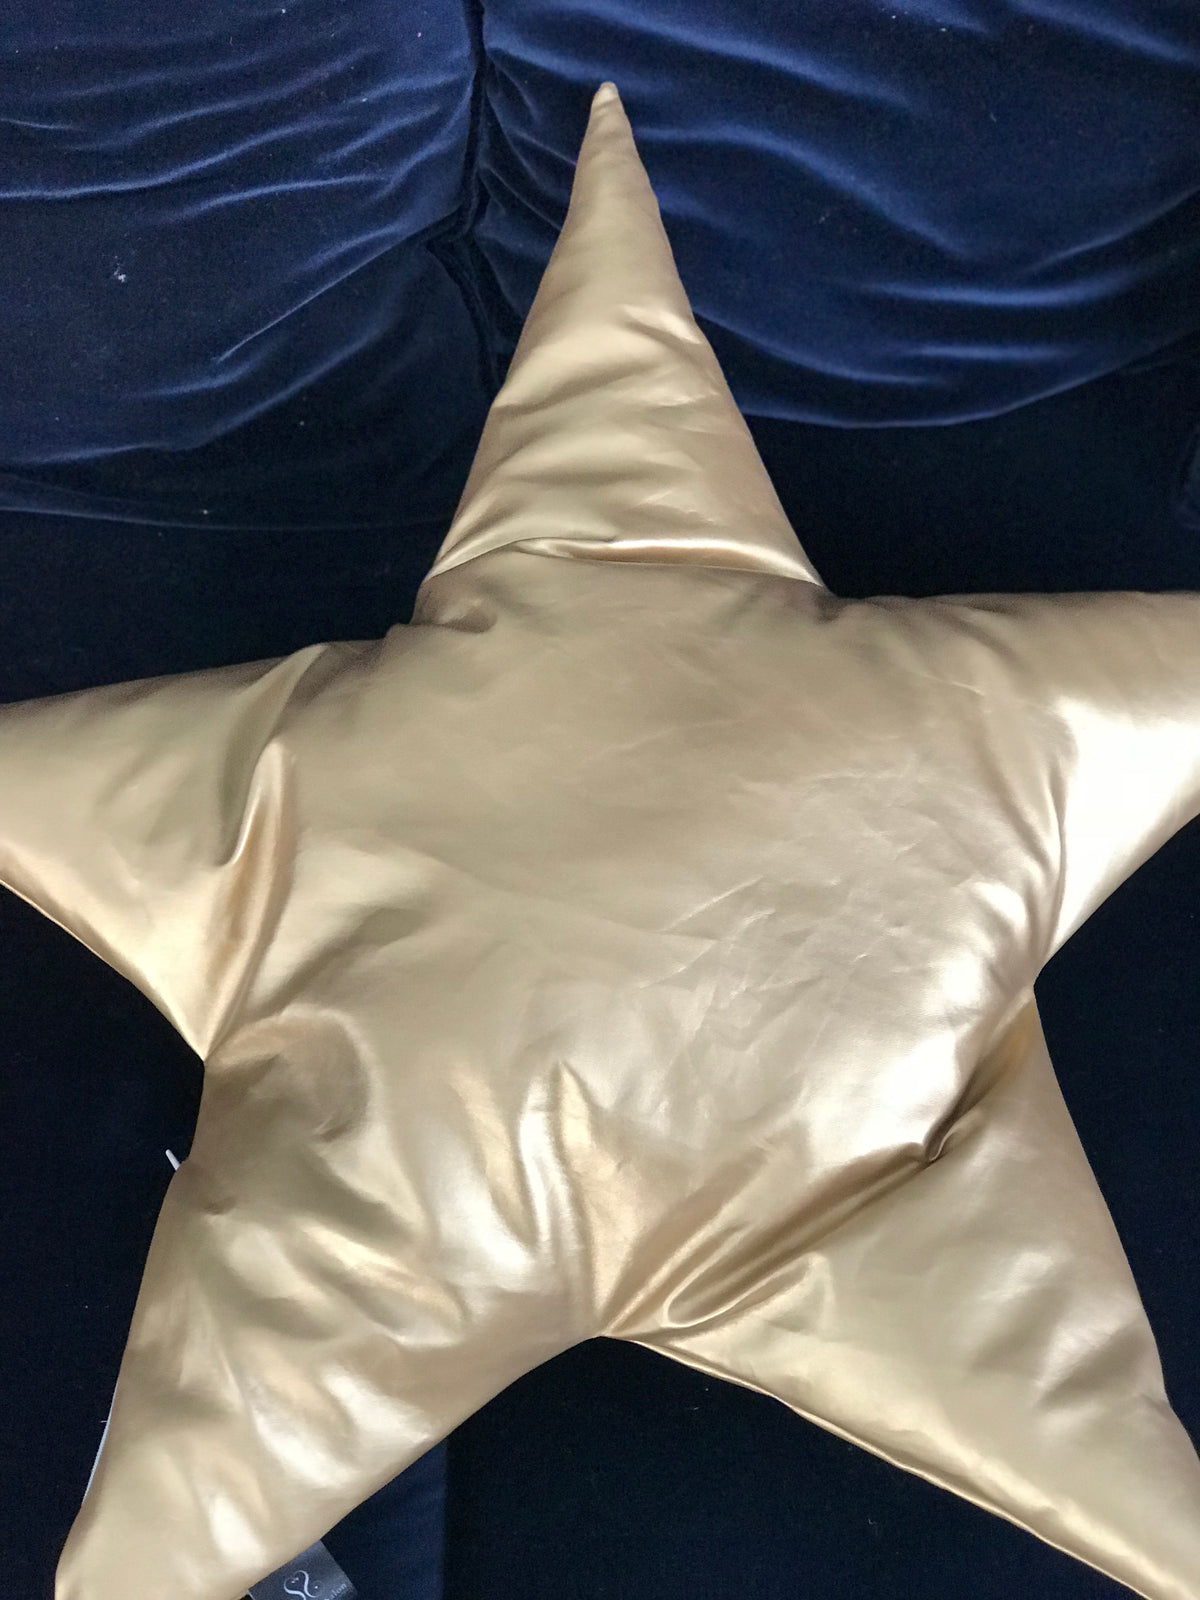 Handmade STAR cushions